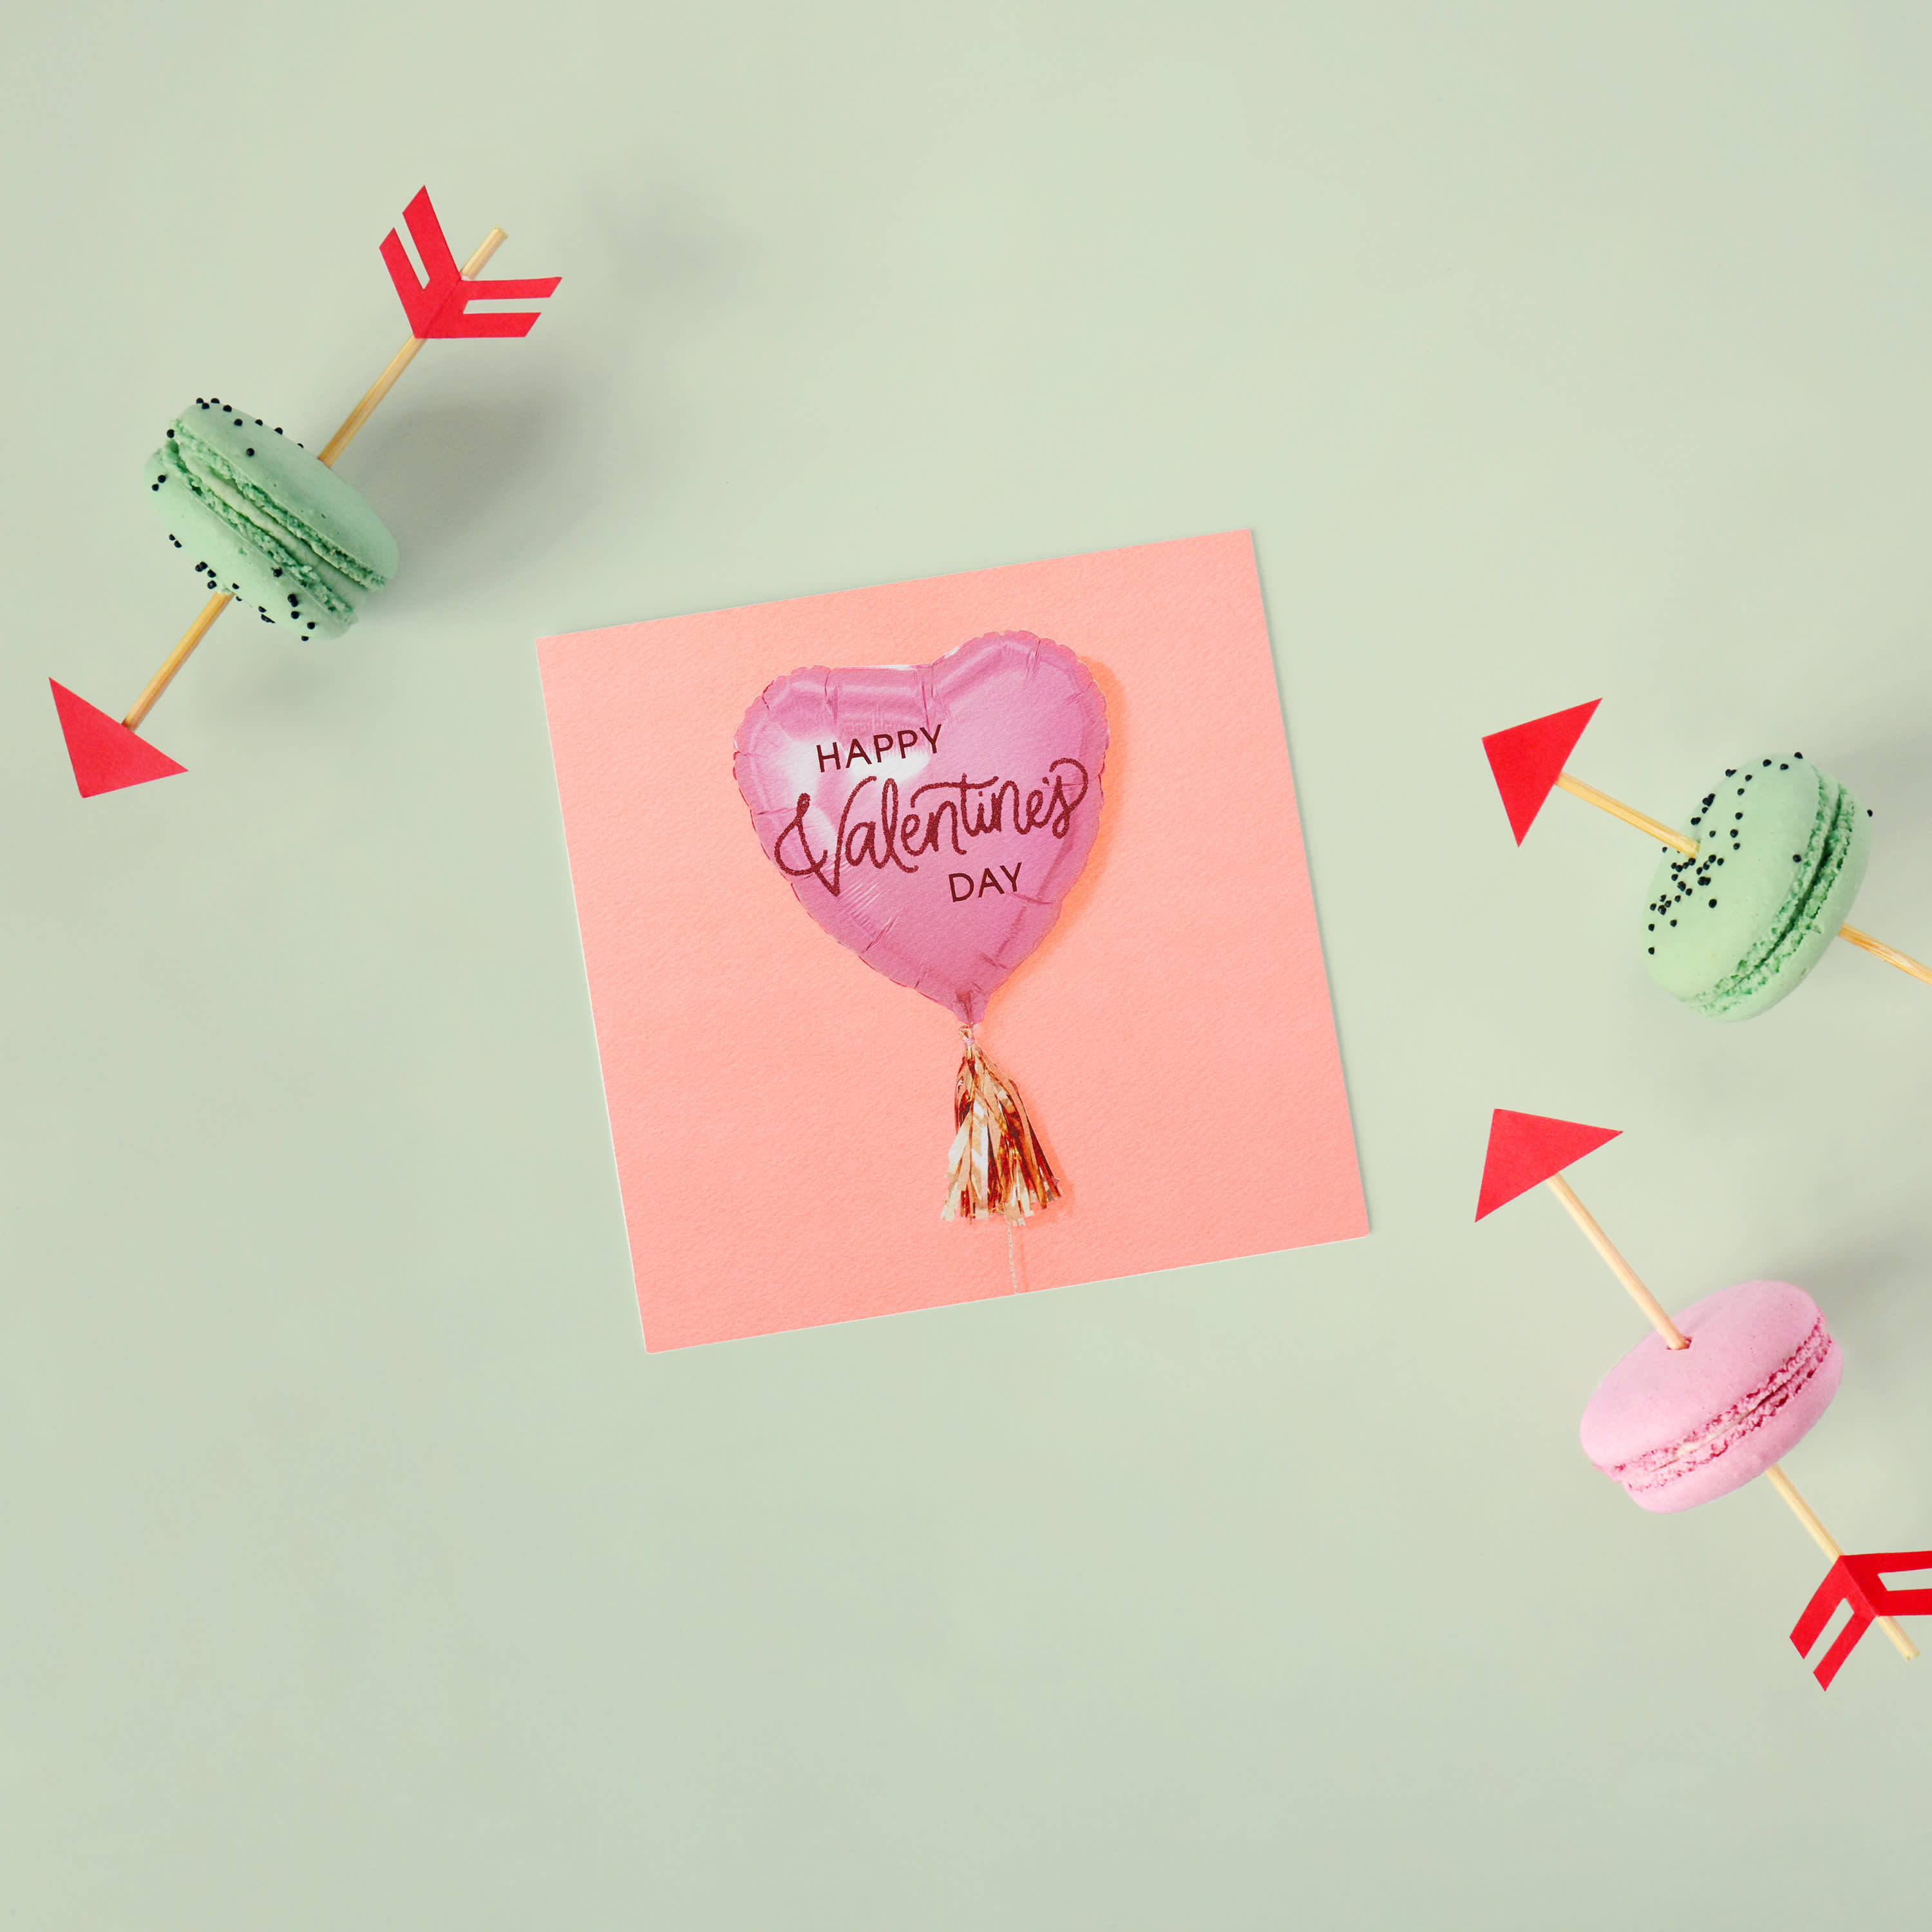 Balloon Valentine's Day Cards, 6-Count image